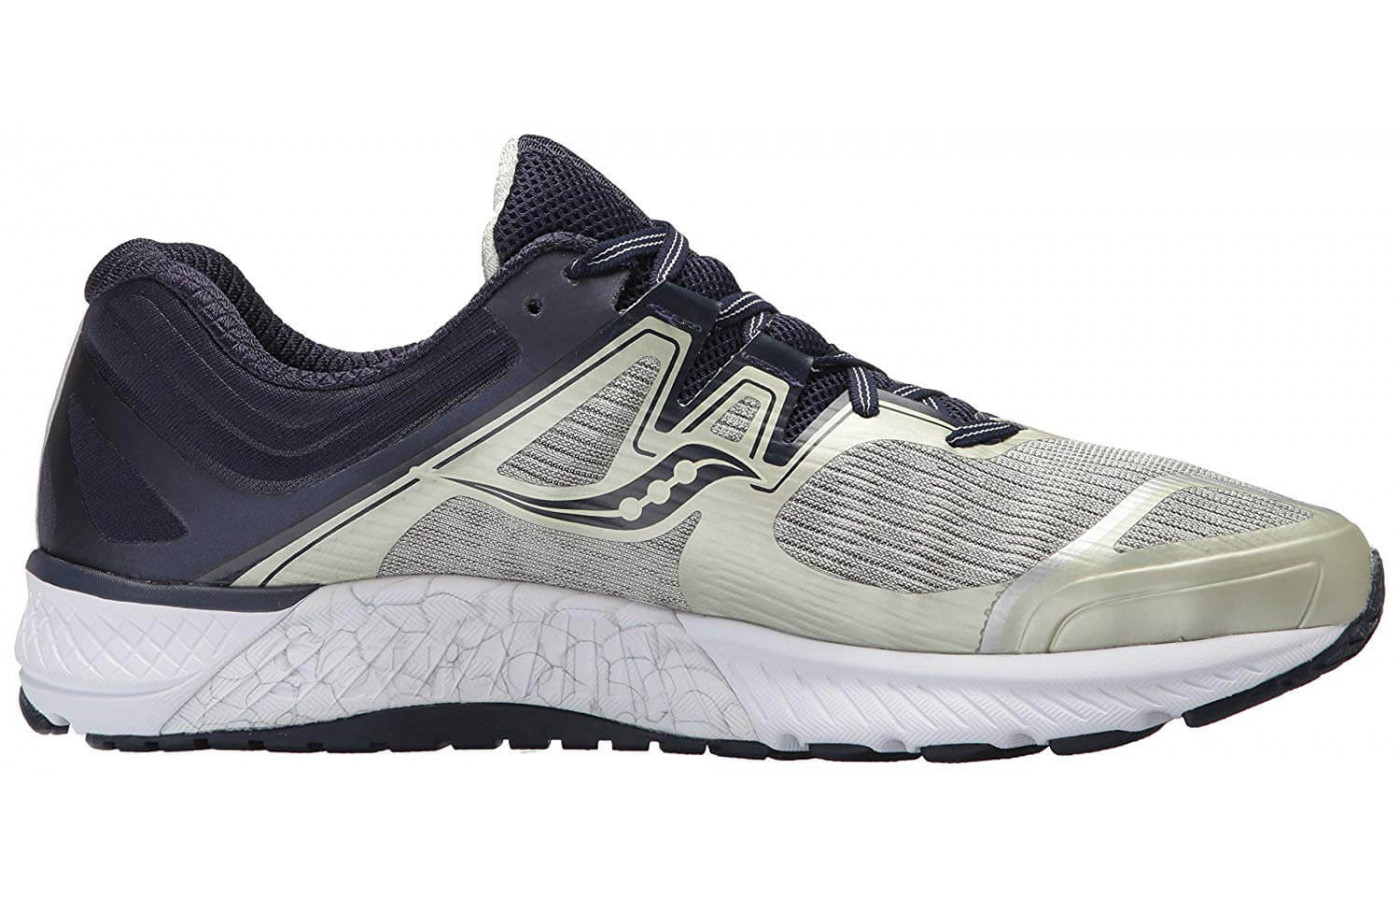 The Saucony Guide ISO provides stability and cushioning